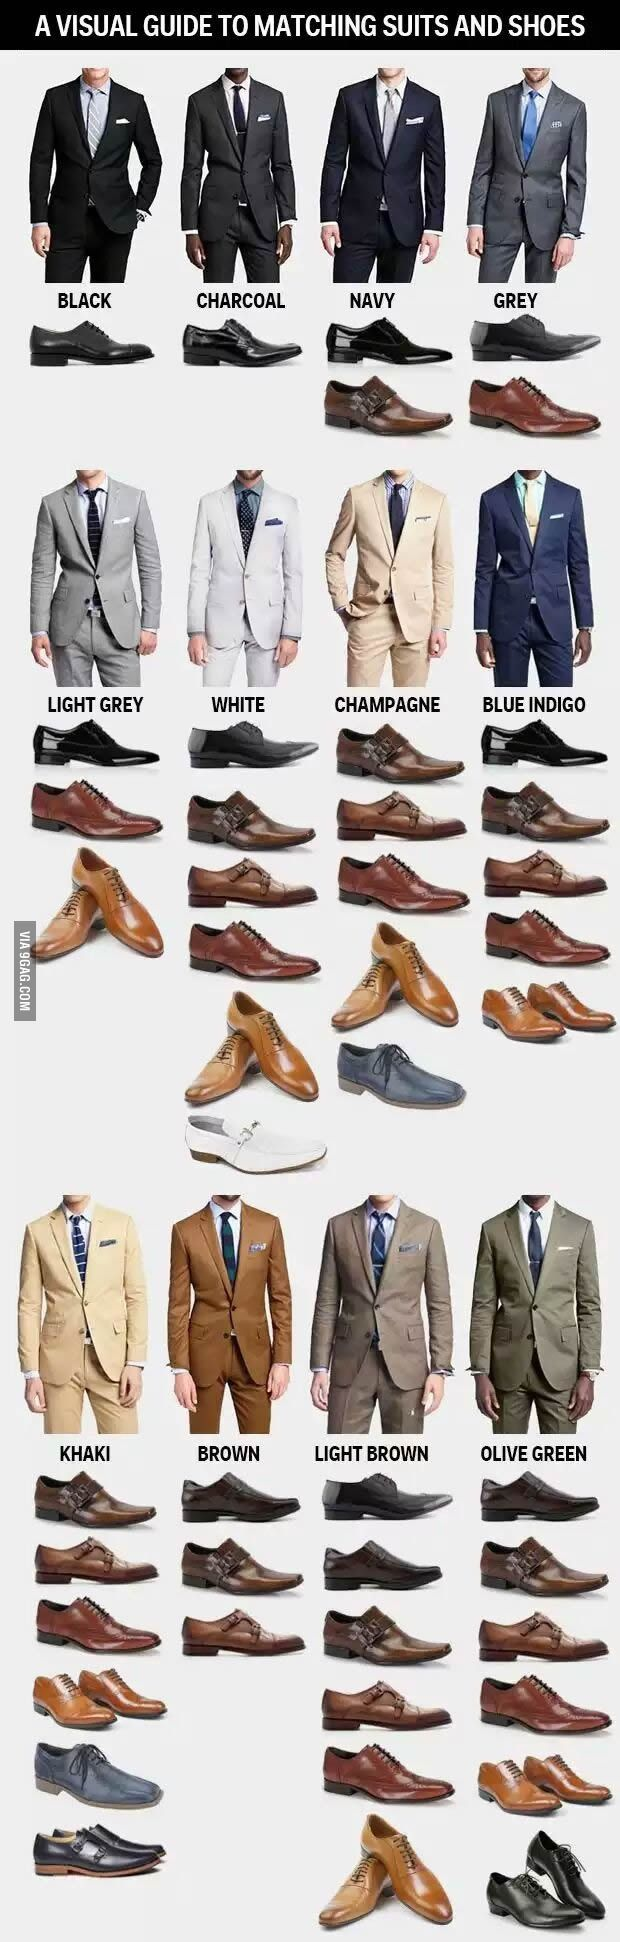 matching suits and shoes | stuff | Pinterest | Knight, Menswear ...